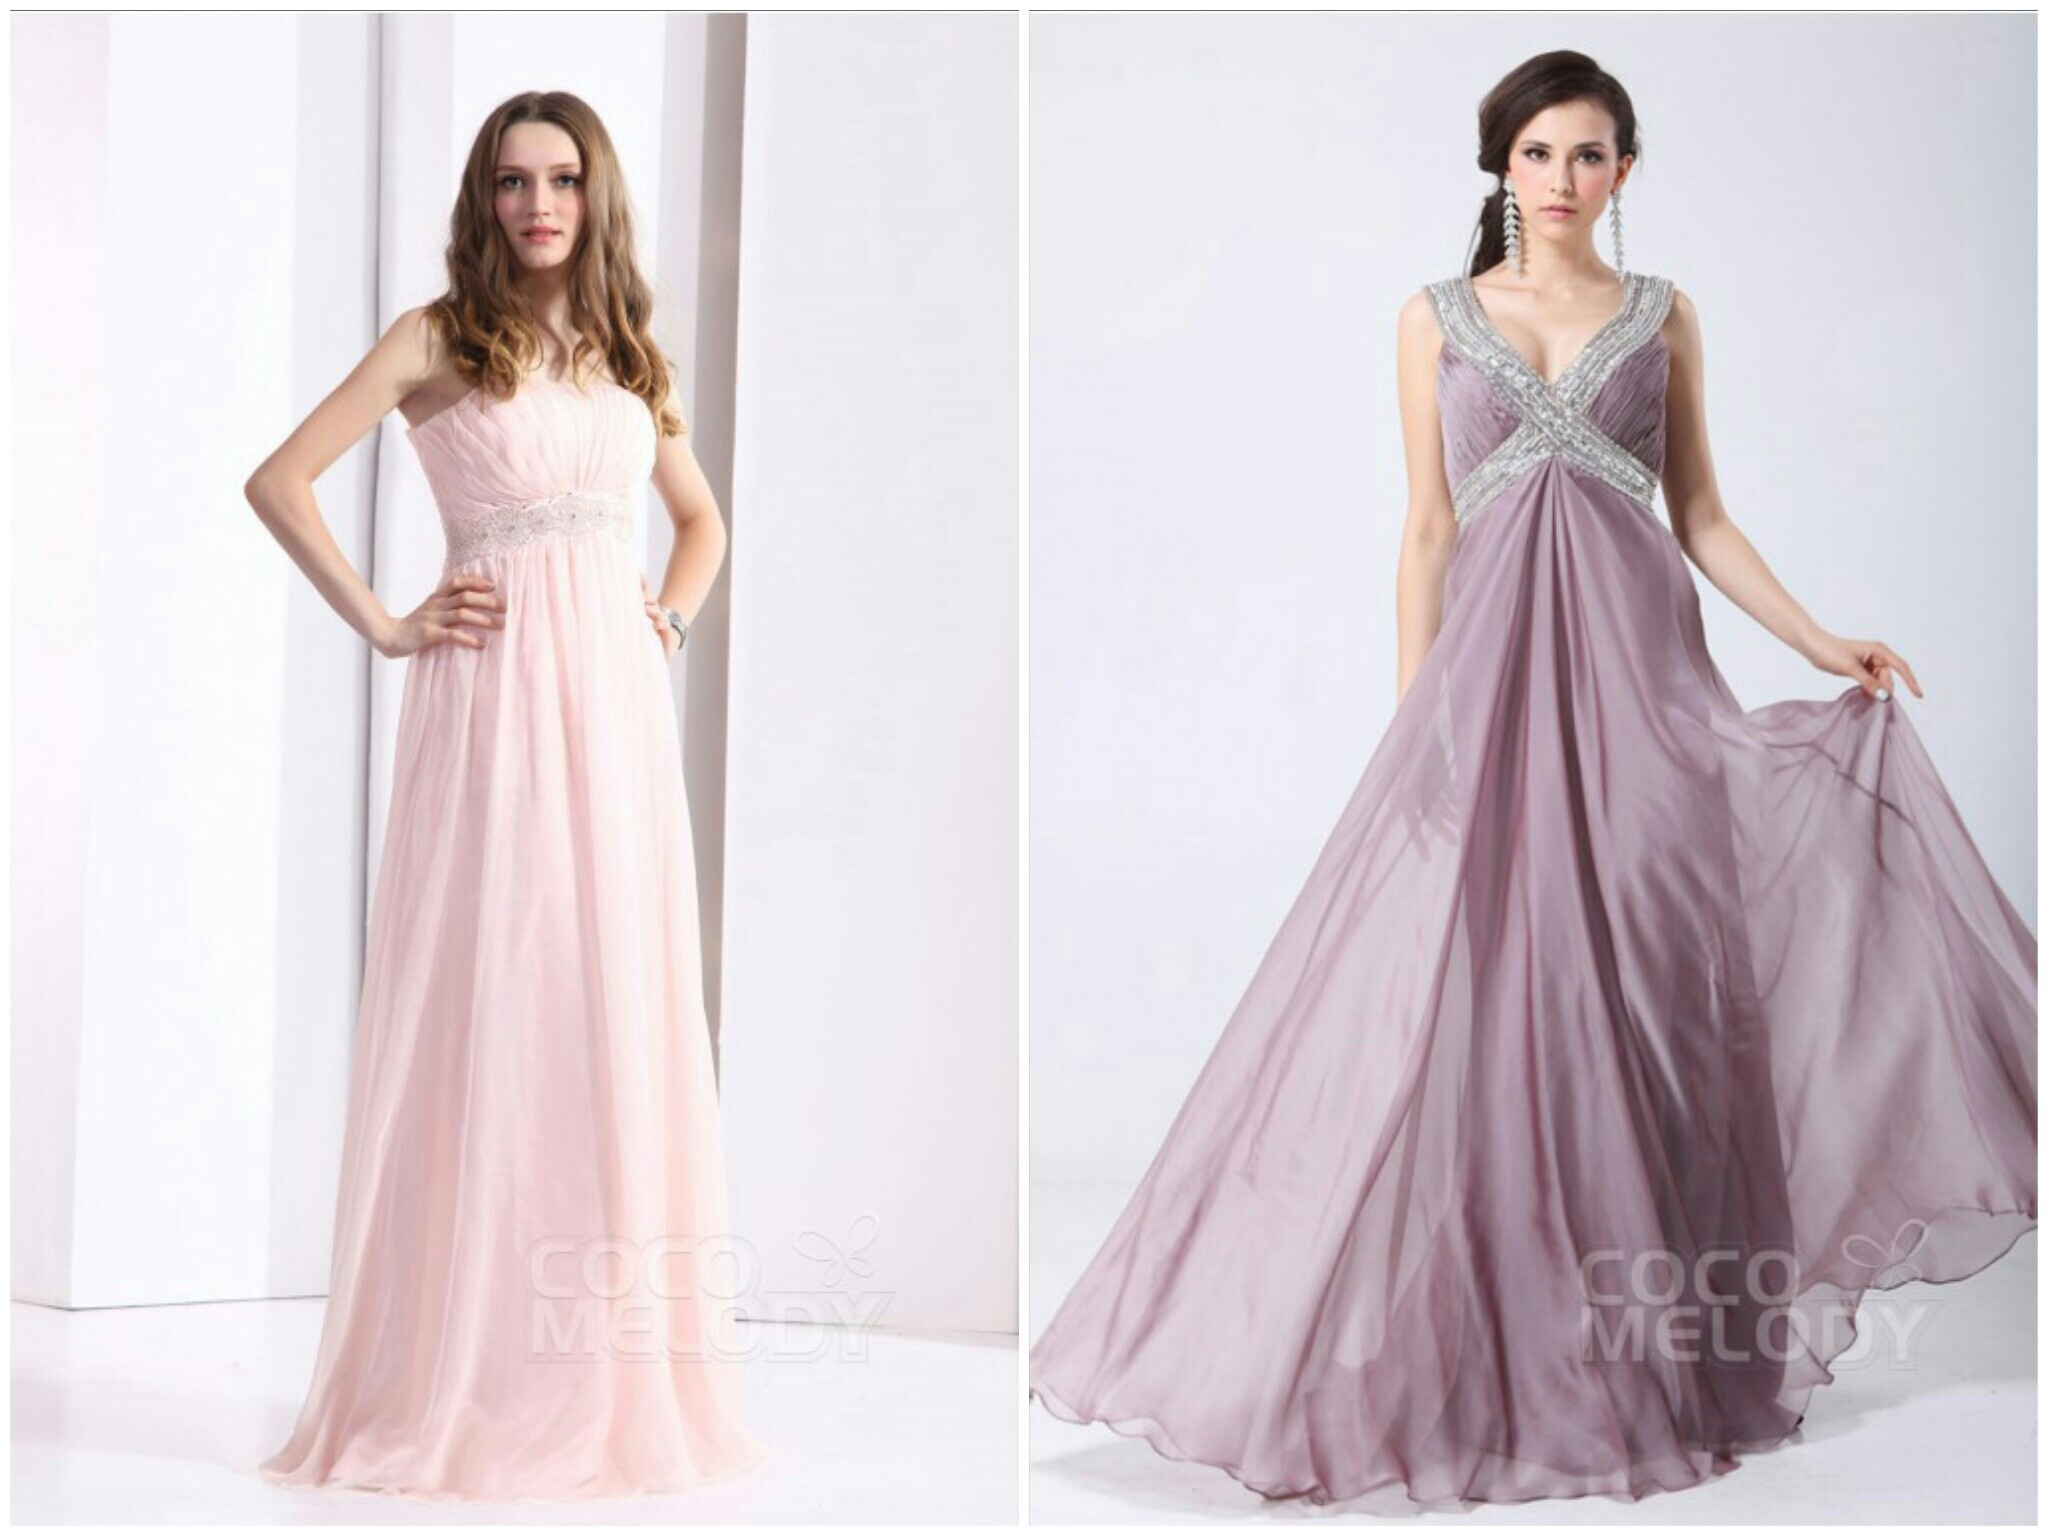 Evening Dresses From CocoMelody.com